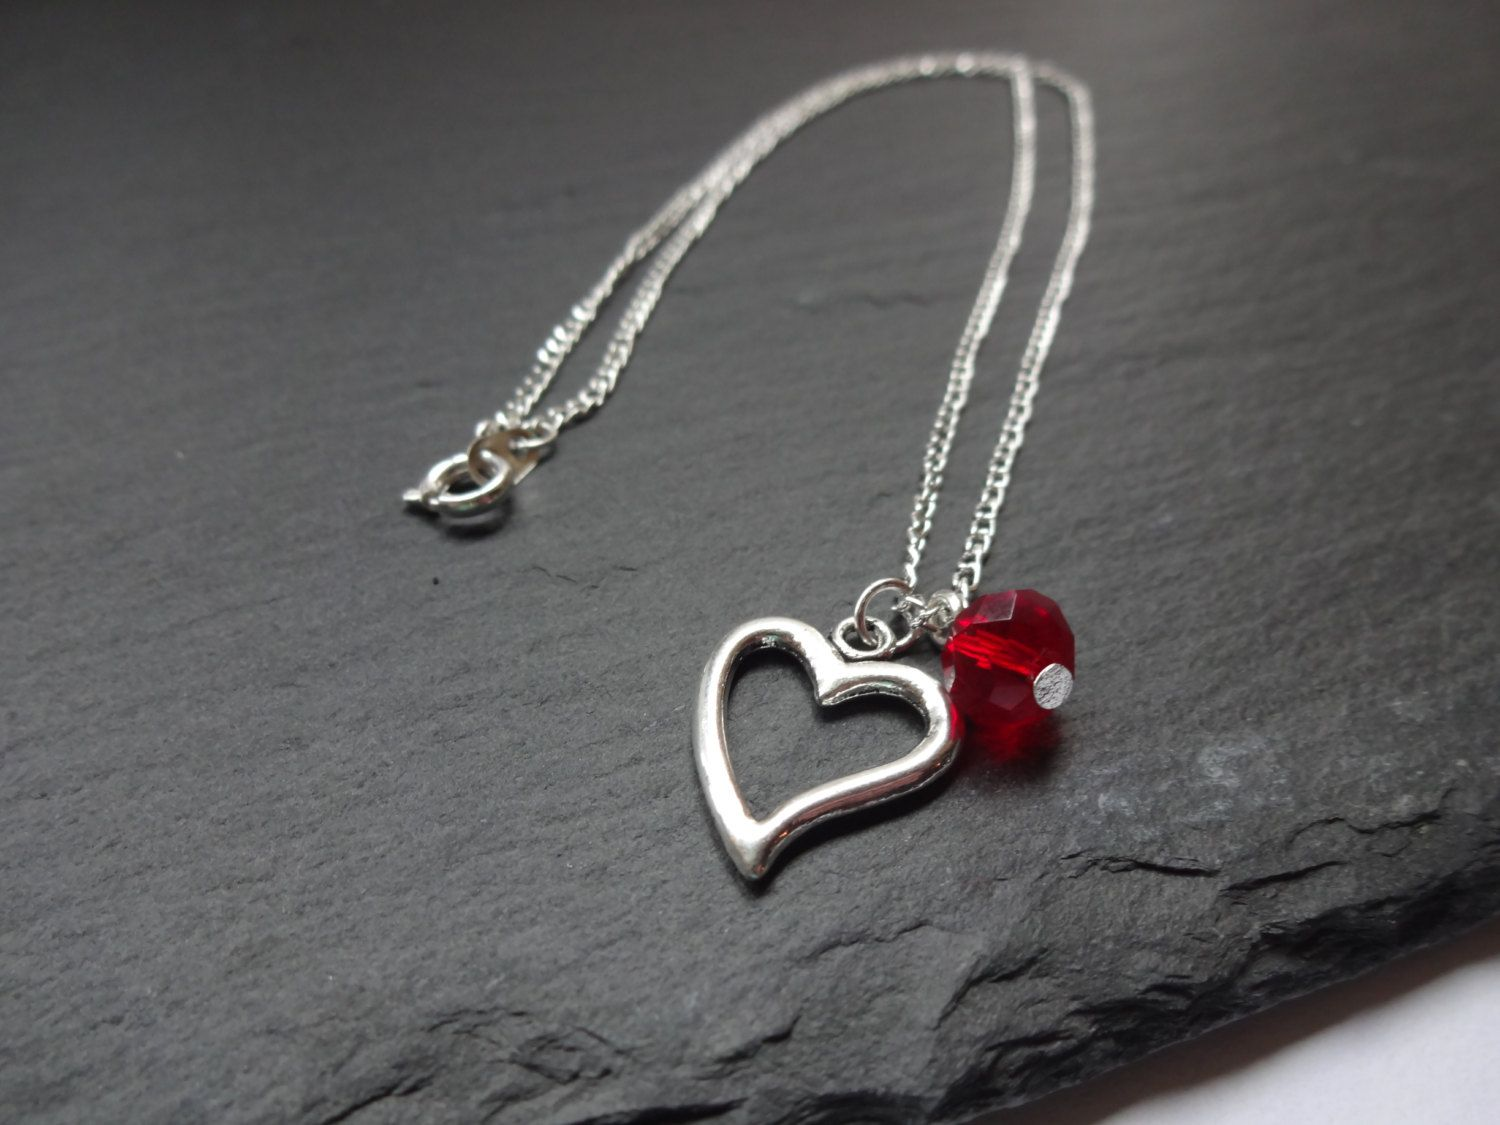 SALE Red Heart Necklace, Heart Charm, Glass Bead, Silver Plated Chain - pinned by pin4etsy.com